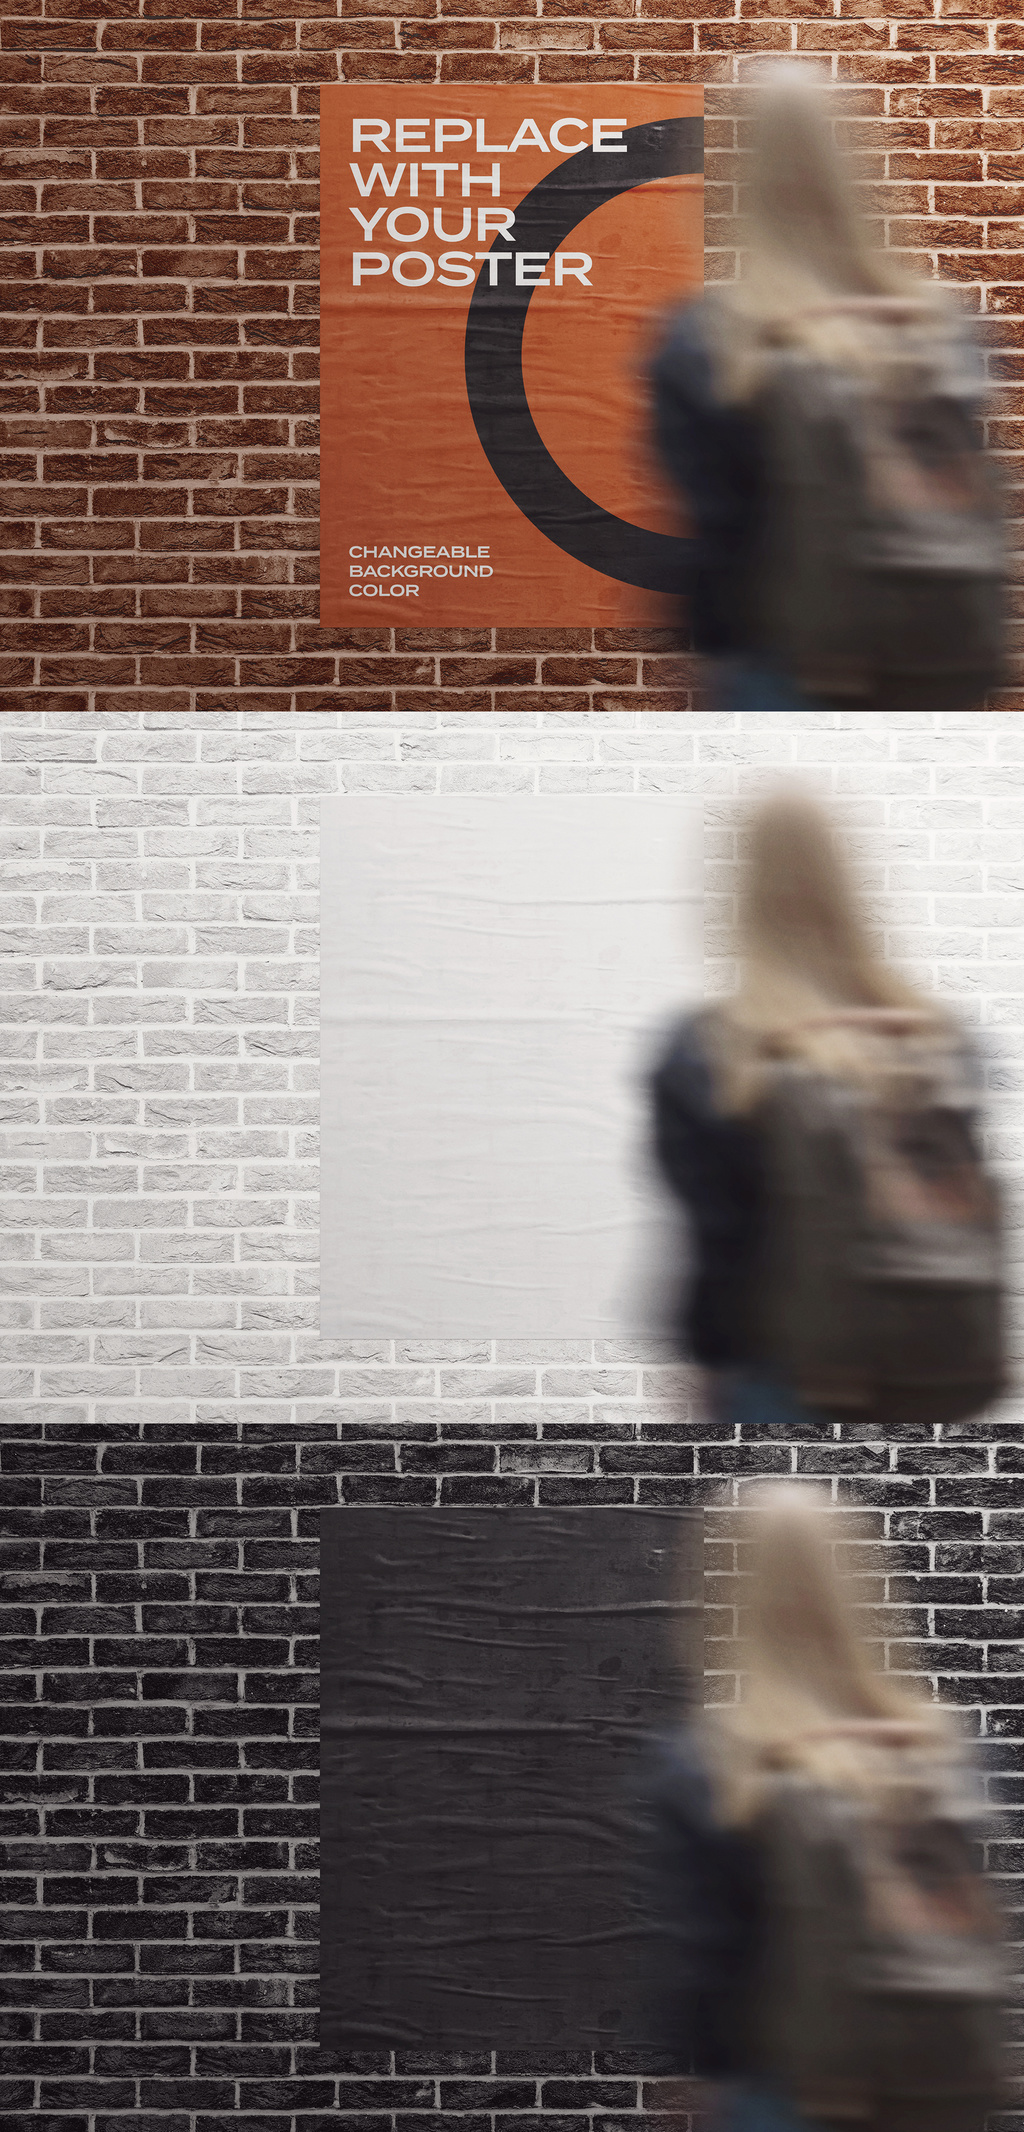 A Glued Poster Photoshop Mockup on a Brick Wall